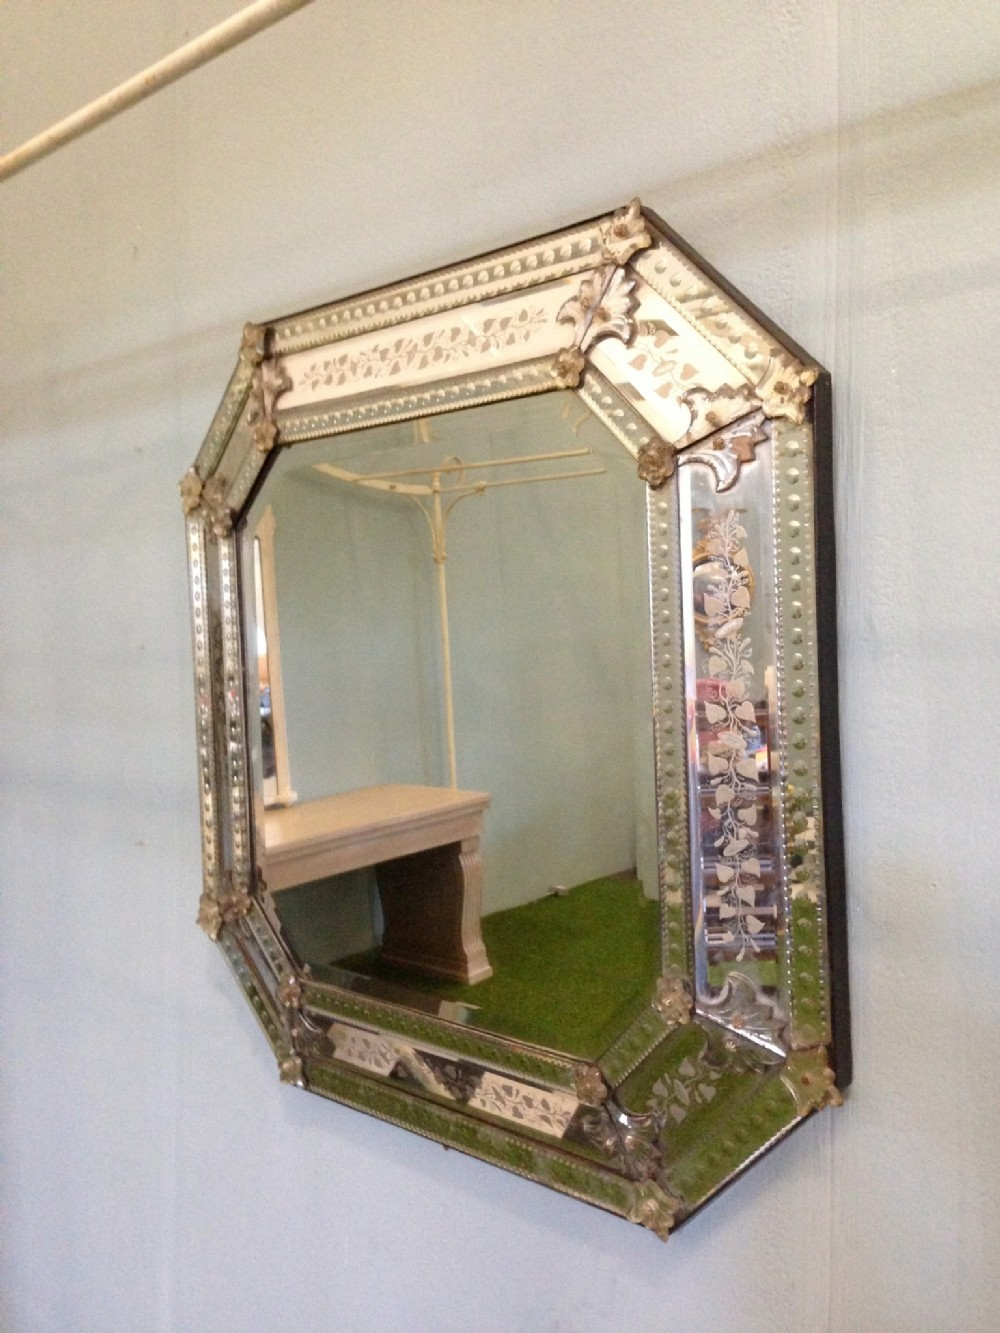 Large Octagonal Venetian Wall Mirror With Decorative